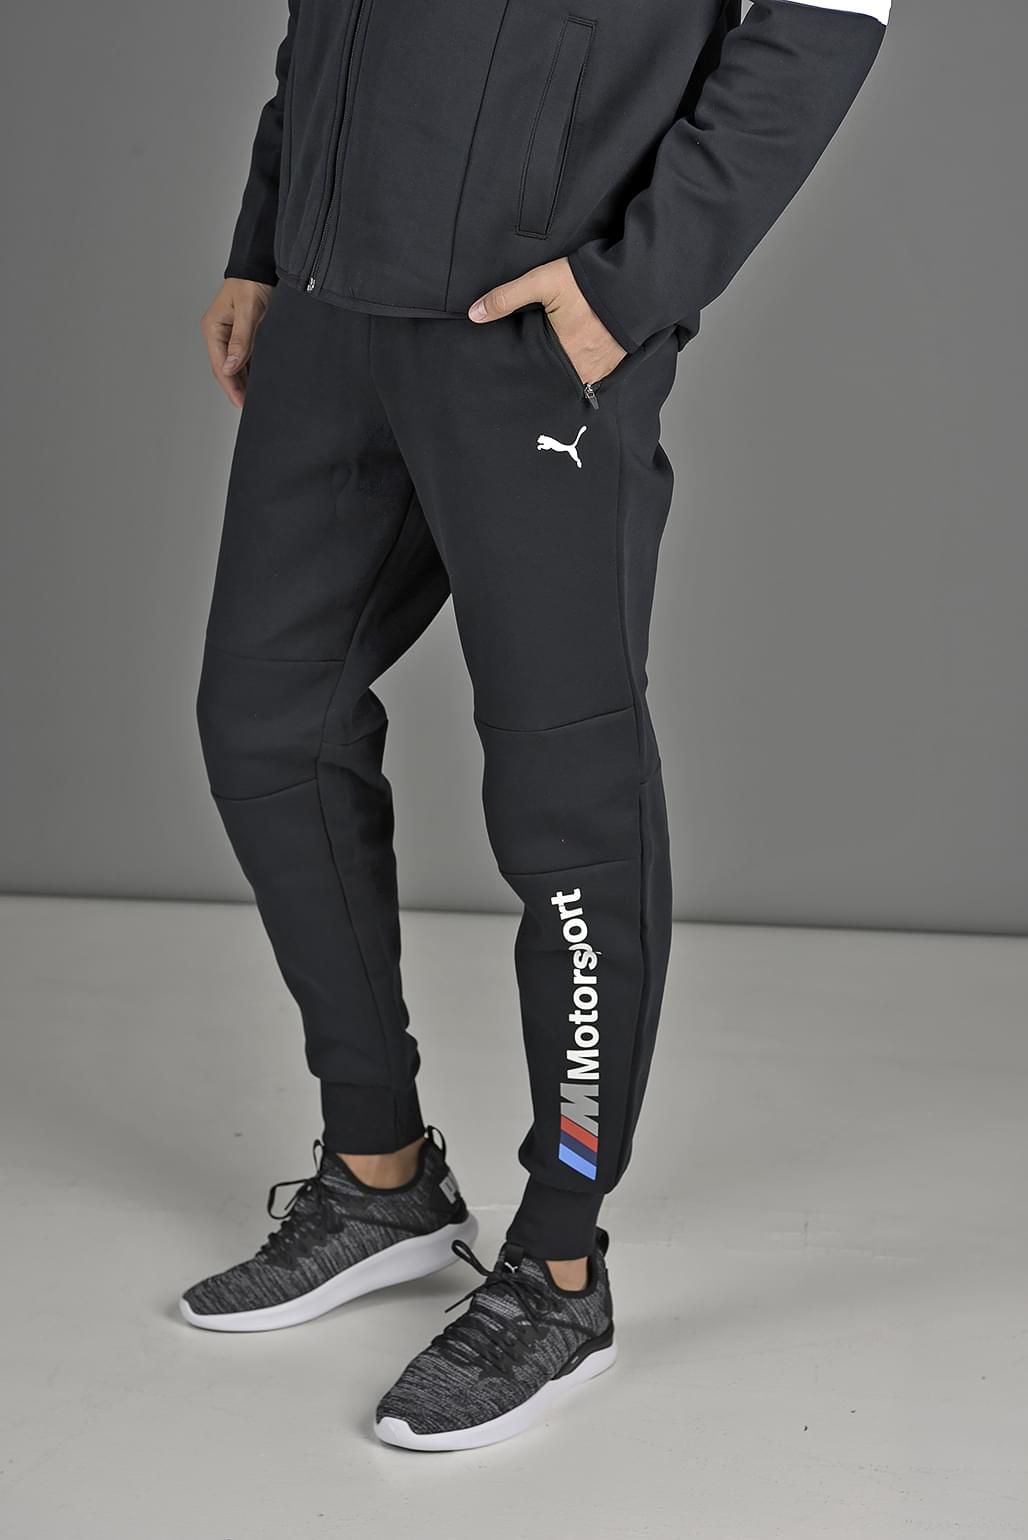 BMW MMS Sweat Pants a39a555425a